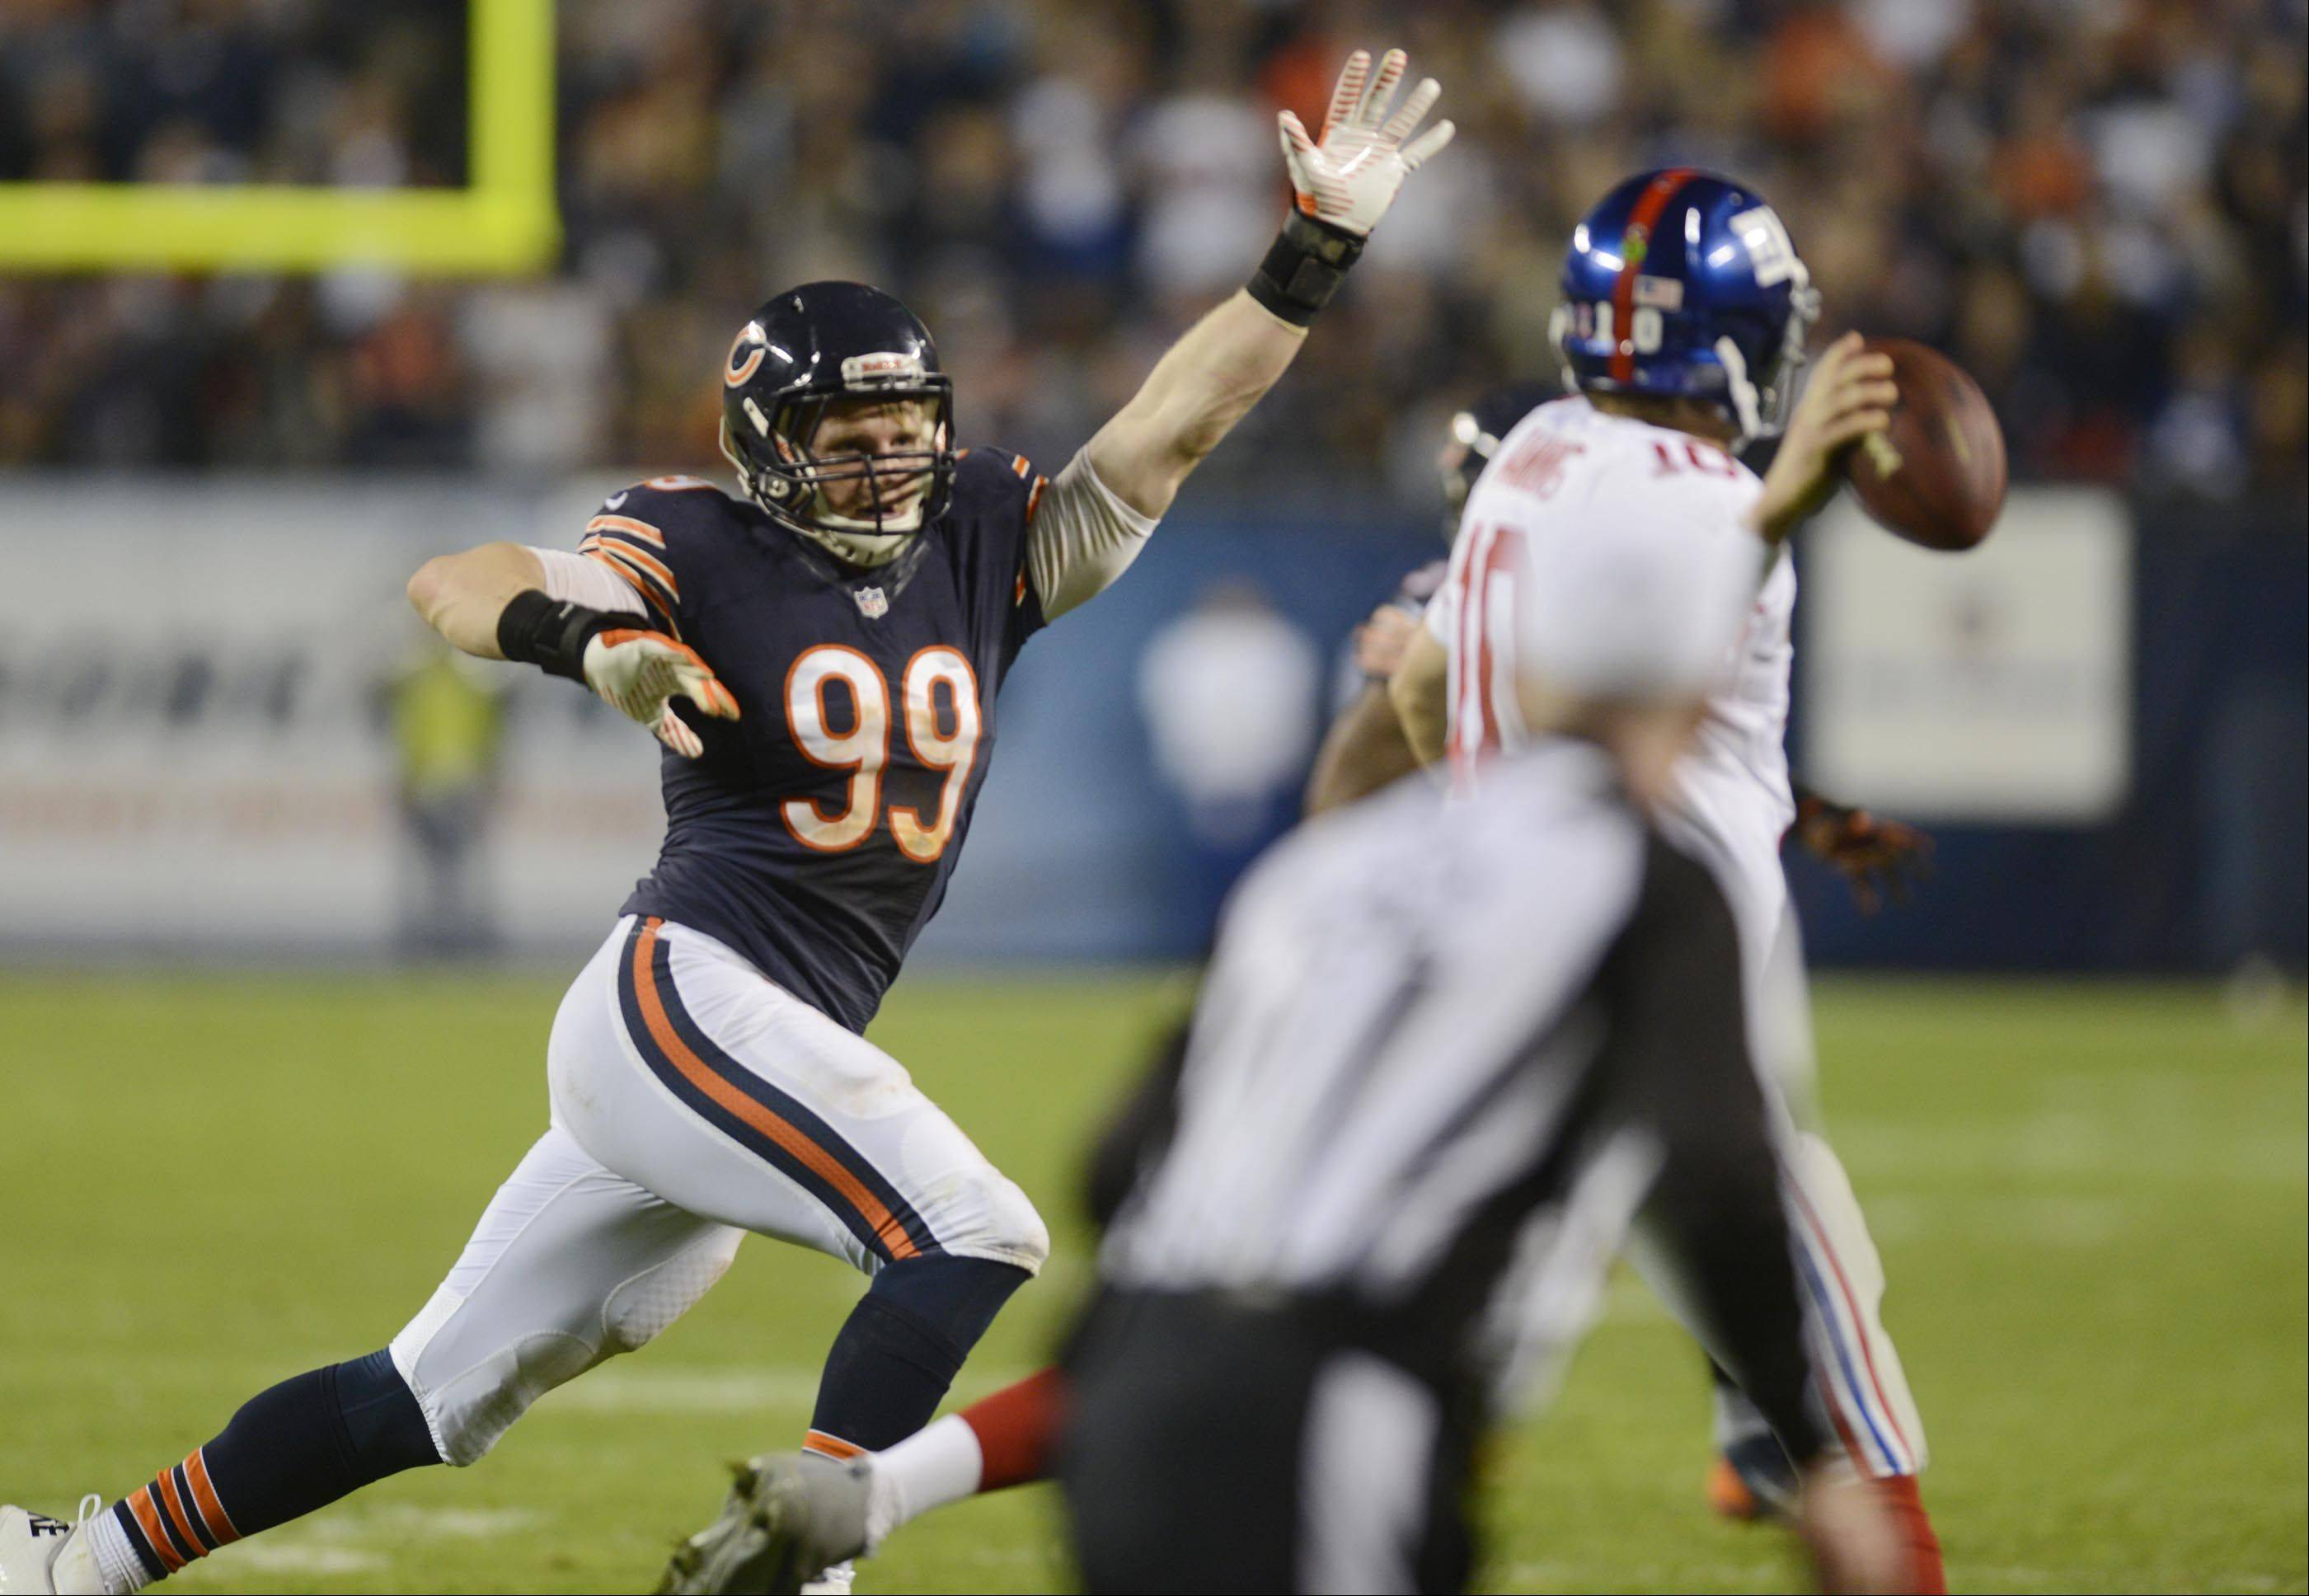 Bears defensive end Shea McClellin pressures New York Giants quarterback Eli Manning Thursday night at Soldier Field in Chicago.